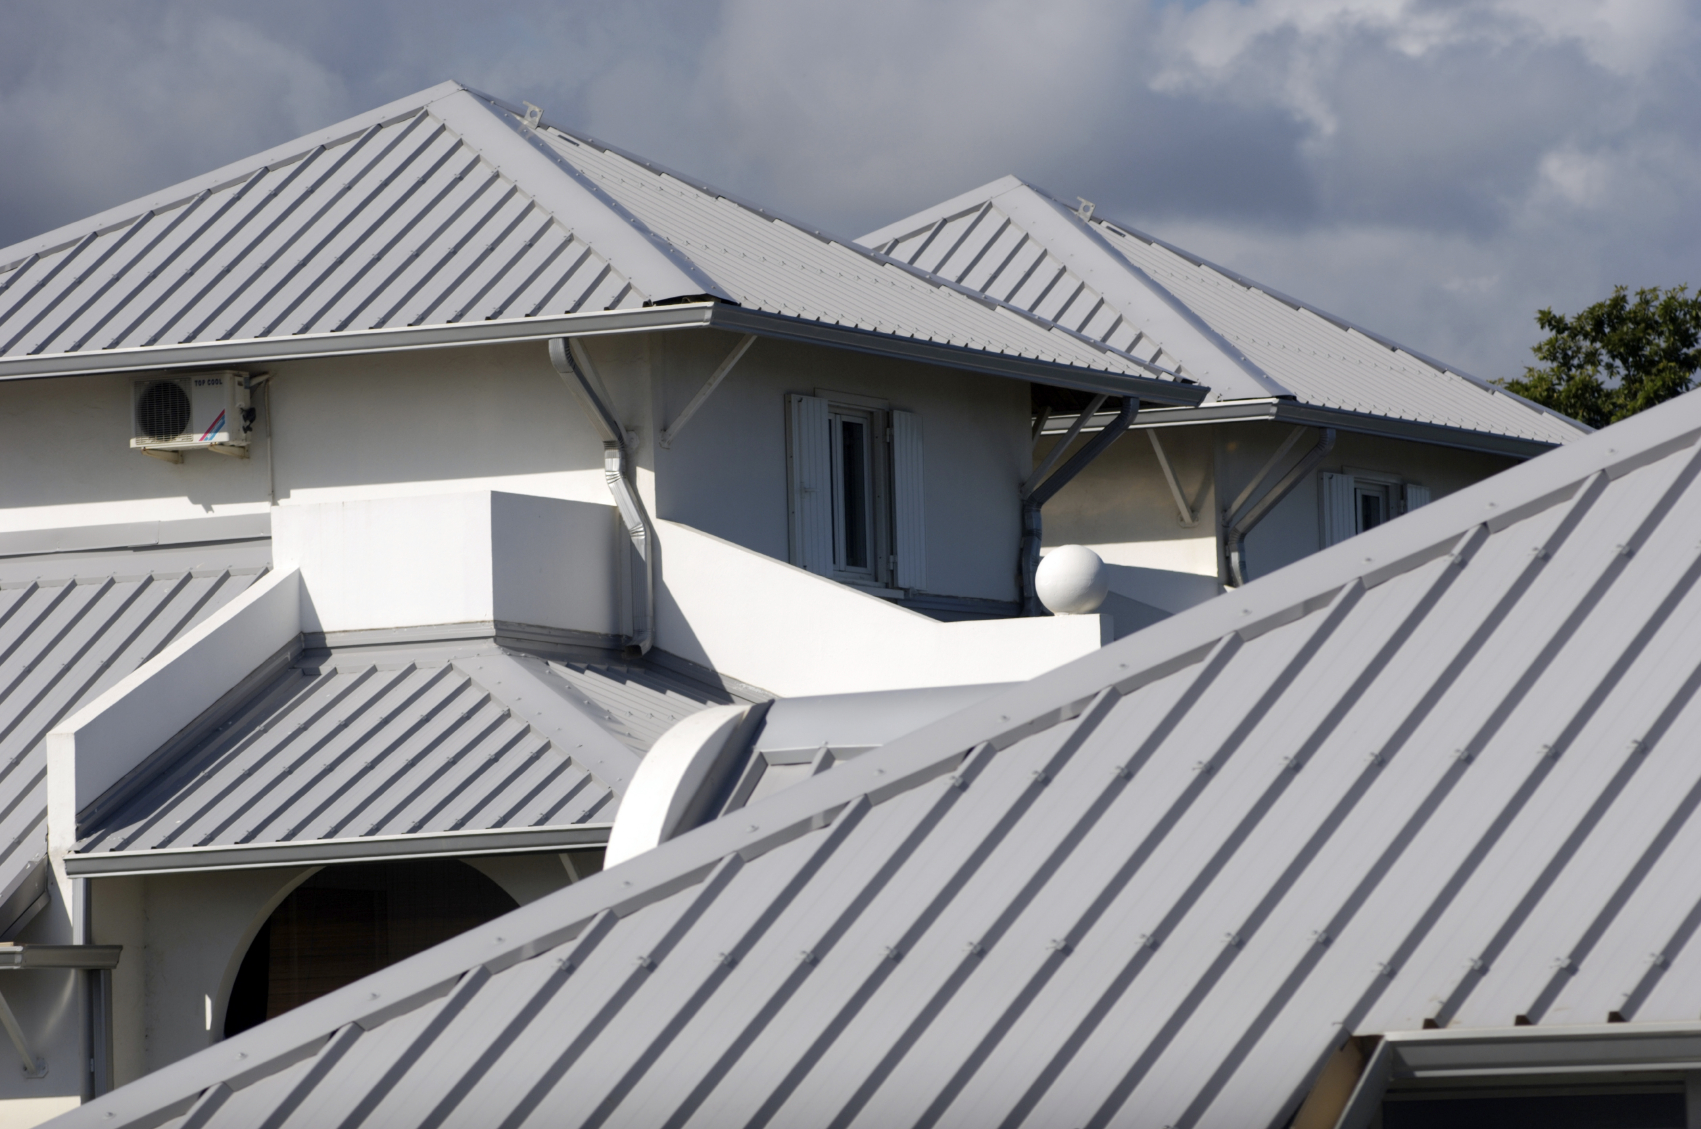 Metal roof metal roof value house for Images of houses with metal roofs